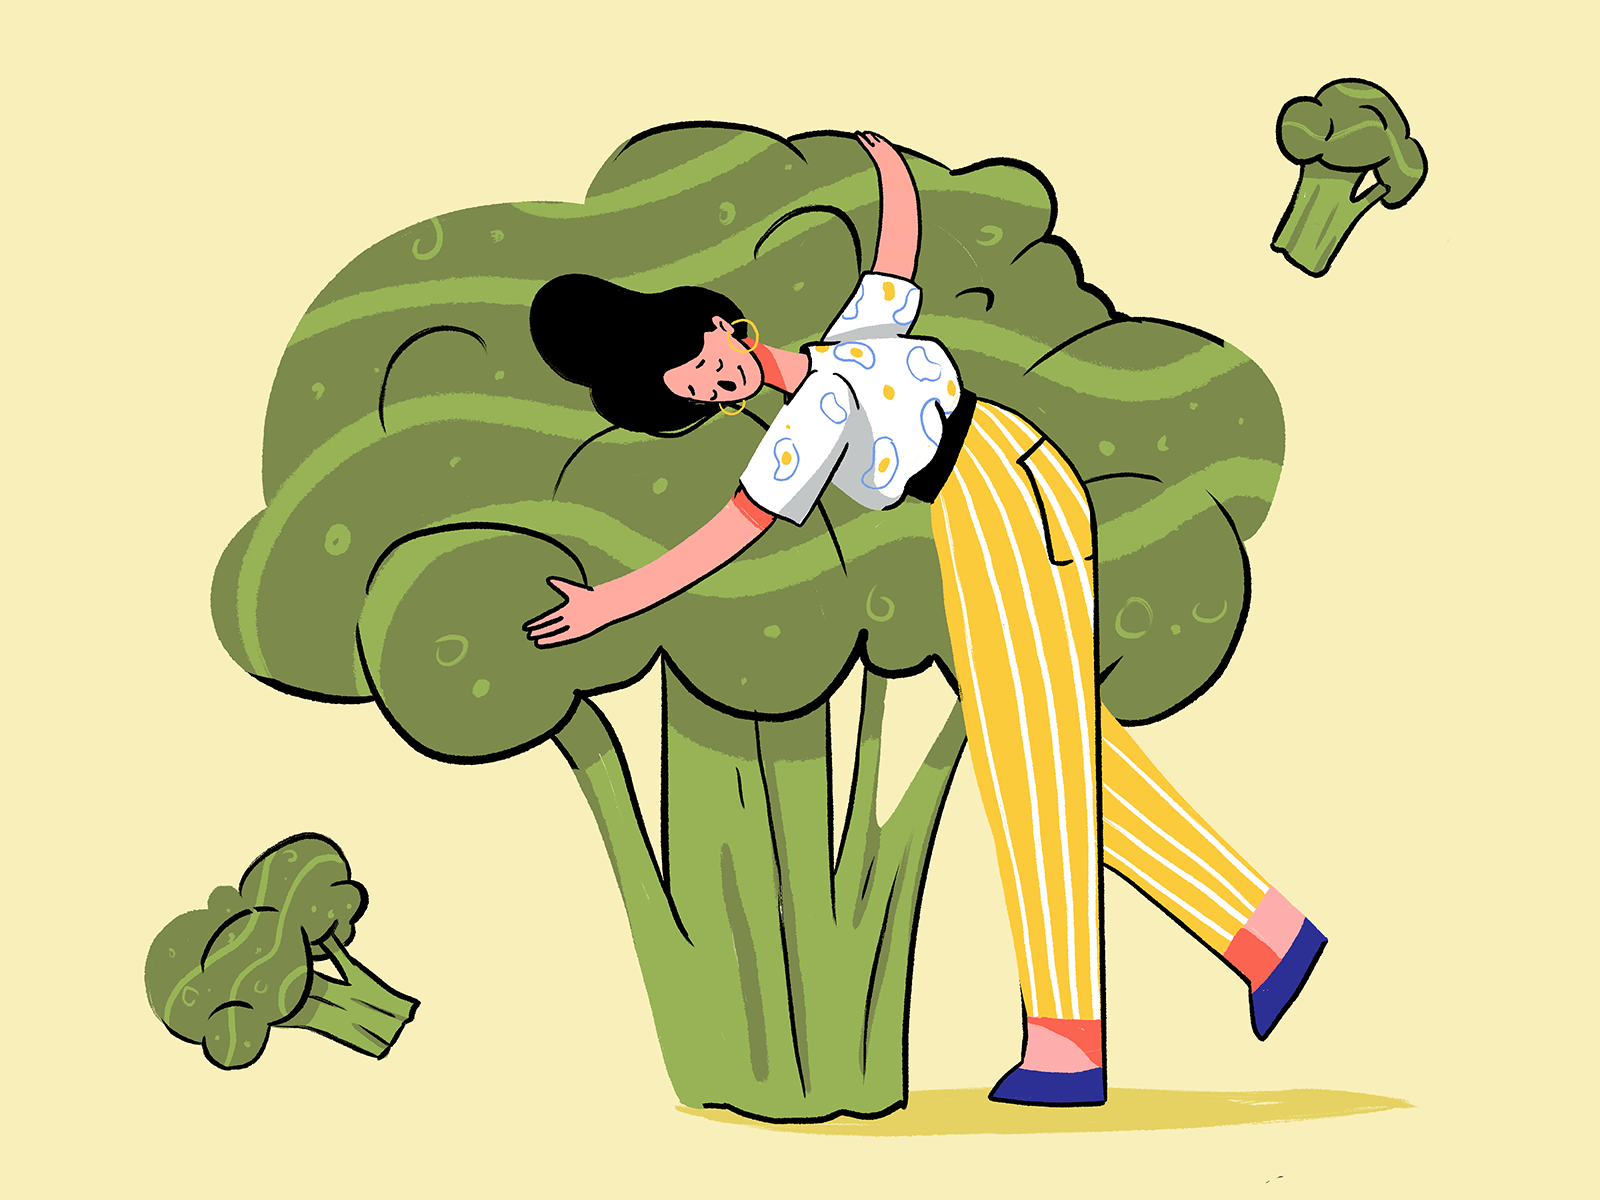 broccoli lover illustration